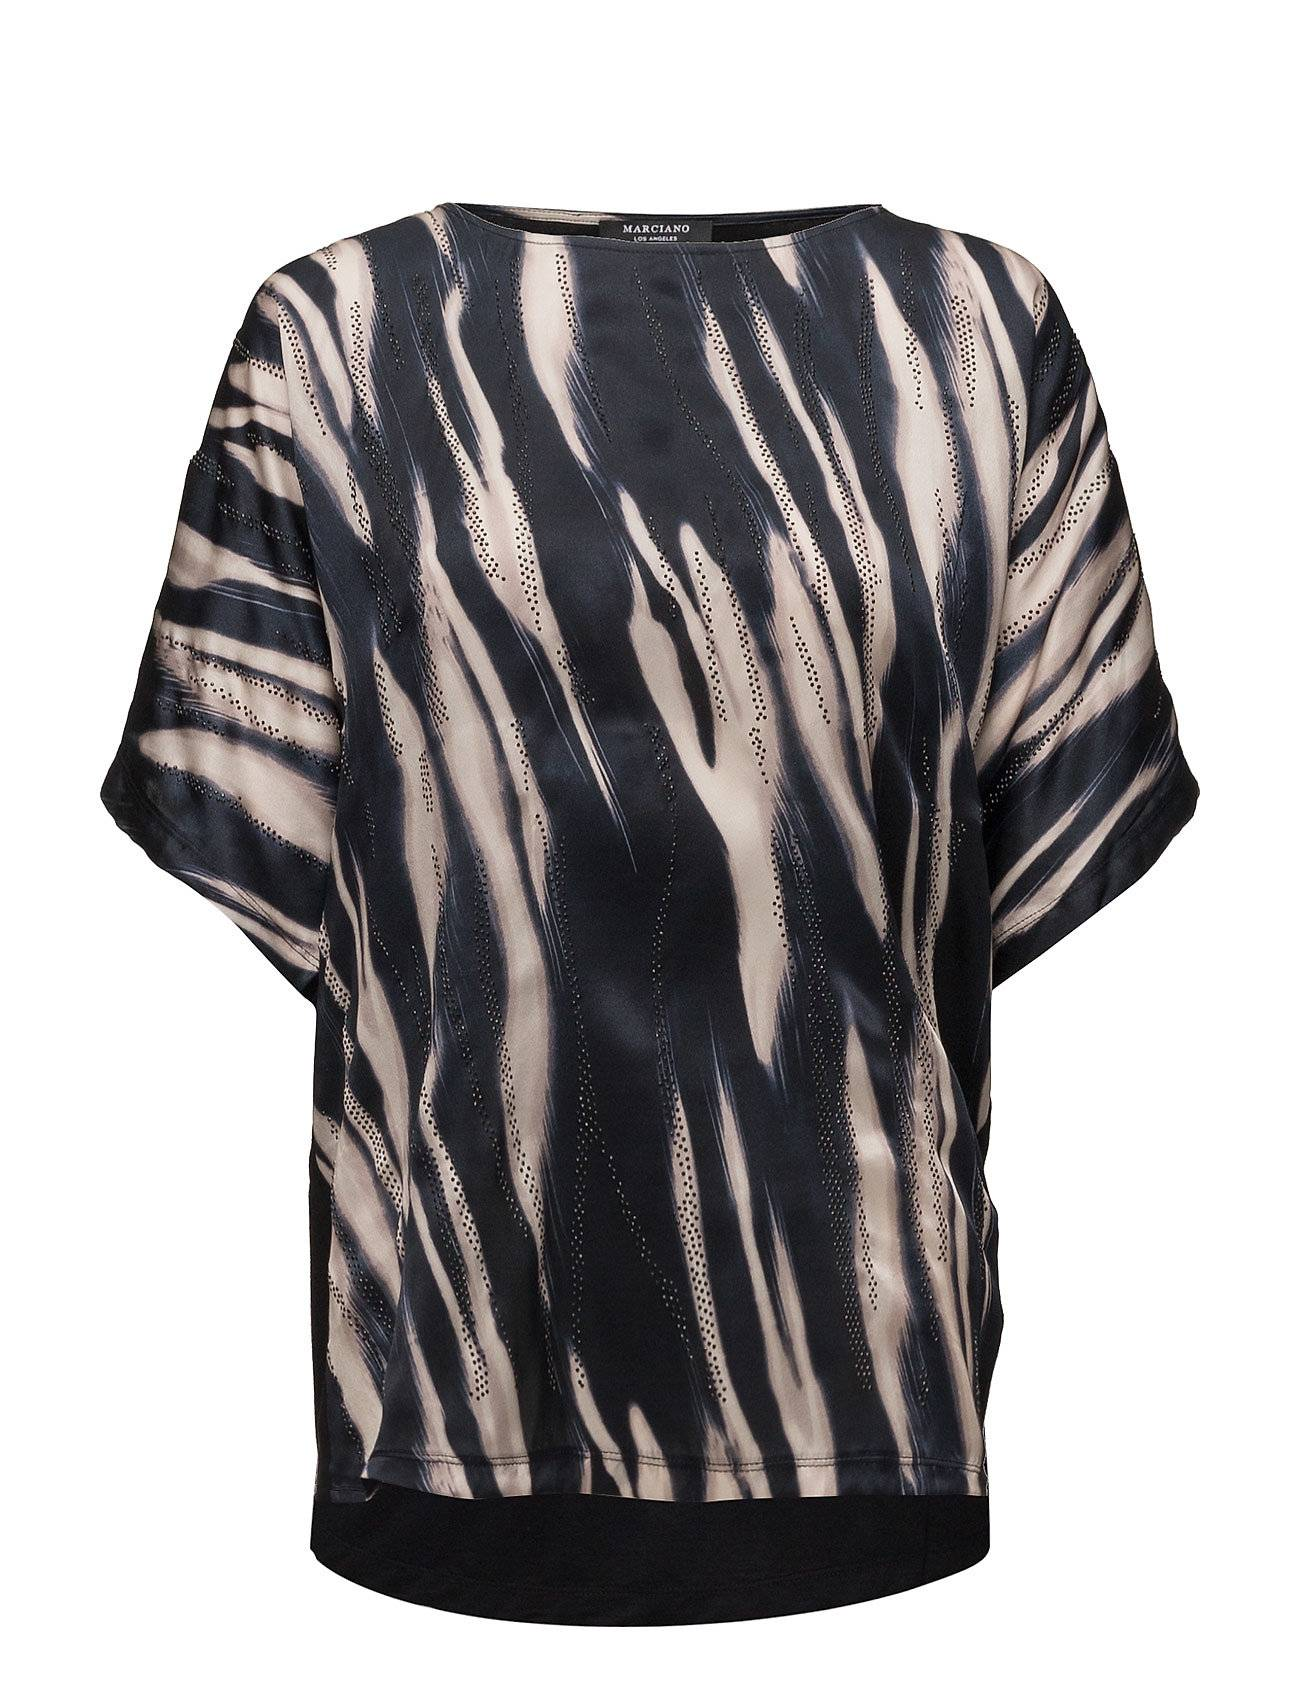 Marciano by GUESS T-Shirt Kimono Fit